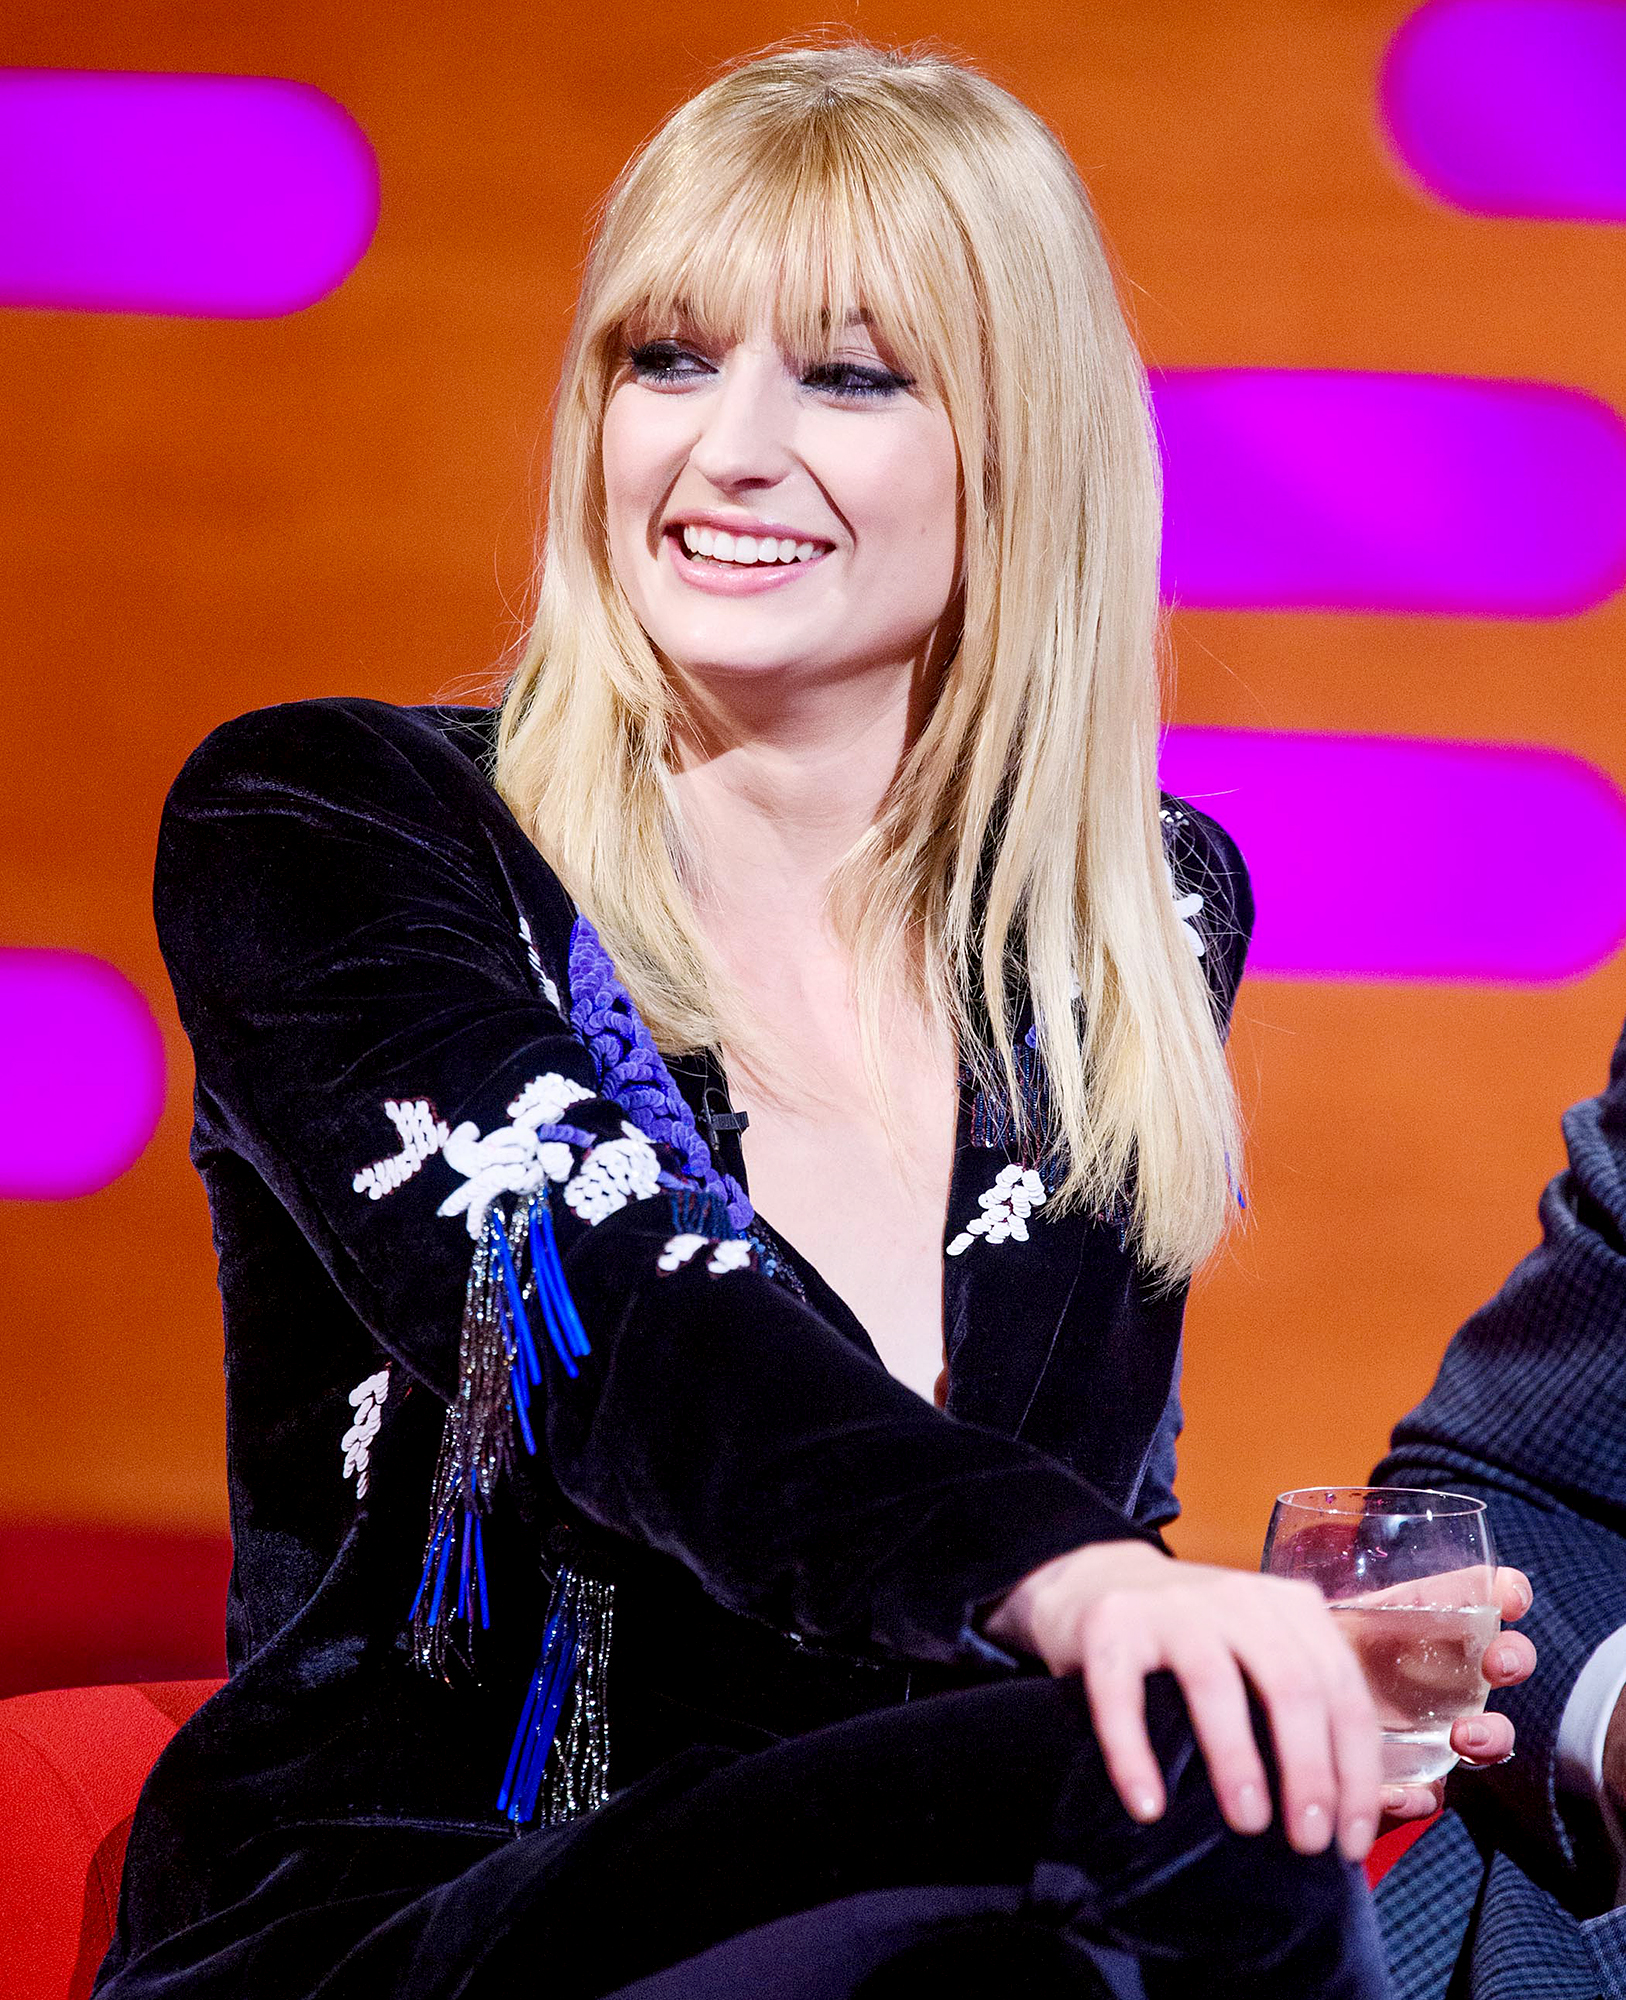 Sophie-Turner-second-wedding-date - Sophie Turner during the filming of the Graham Norton Show at BBC Studioworks 6, Television Centre, Wood Lane, London.